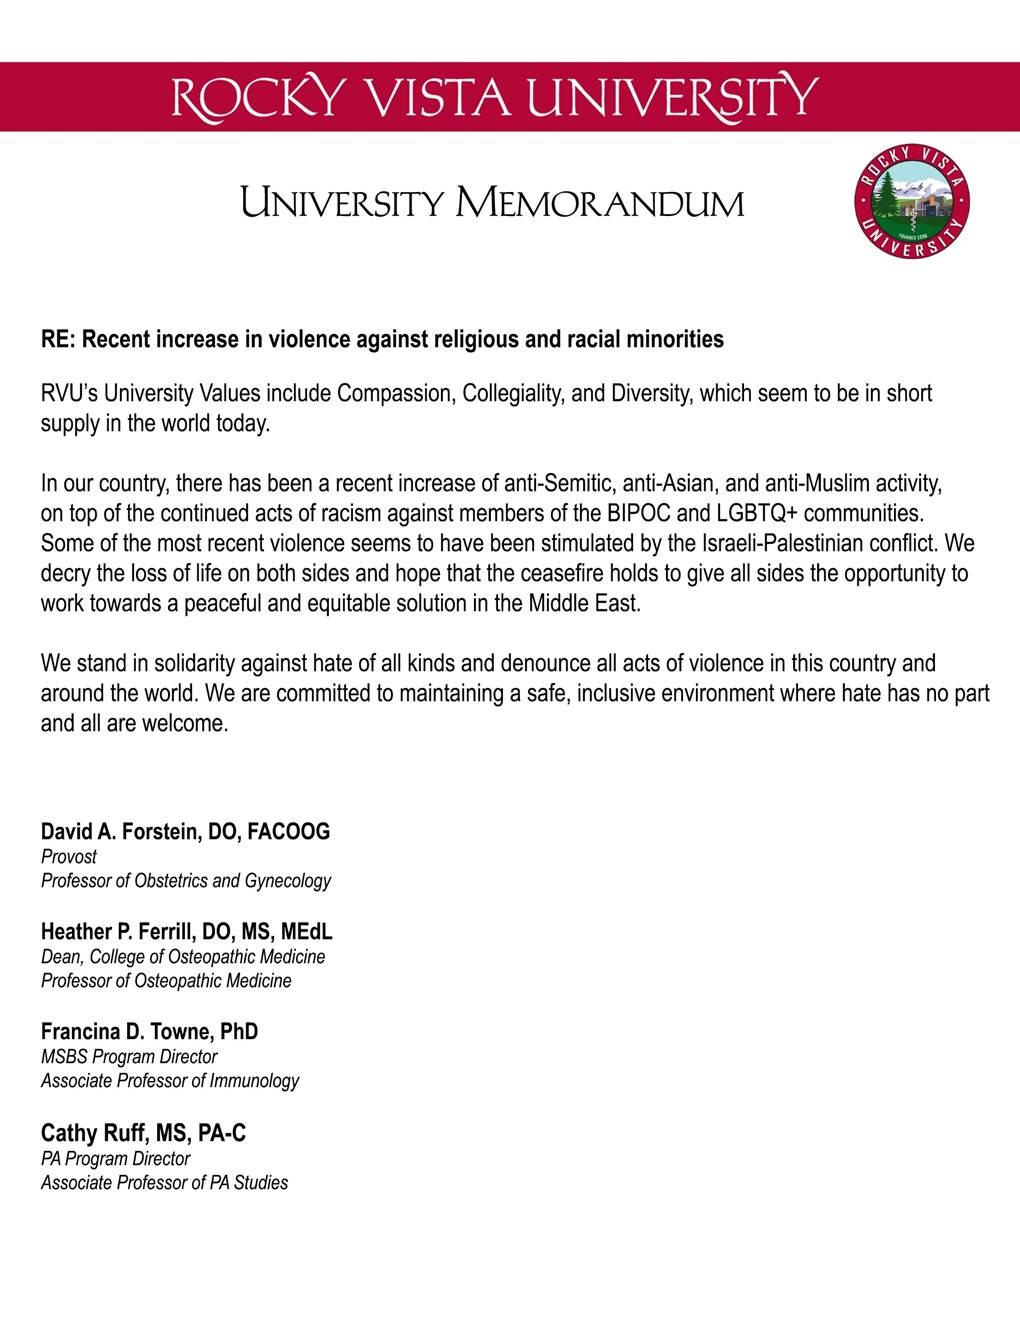 RVU - Recent increase in violence against religious and racial minorities